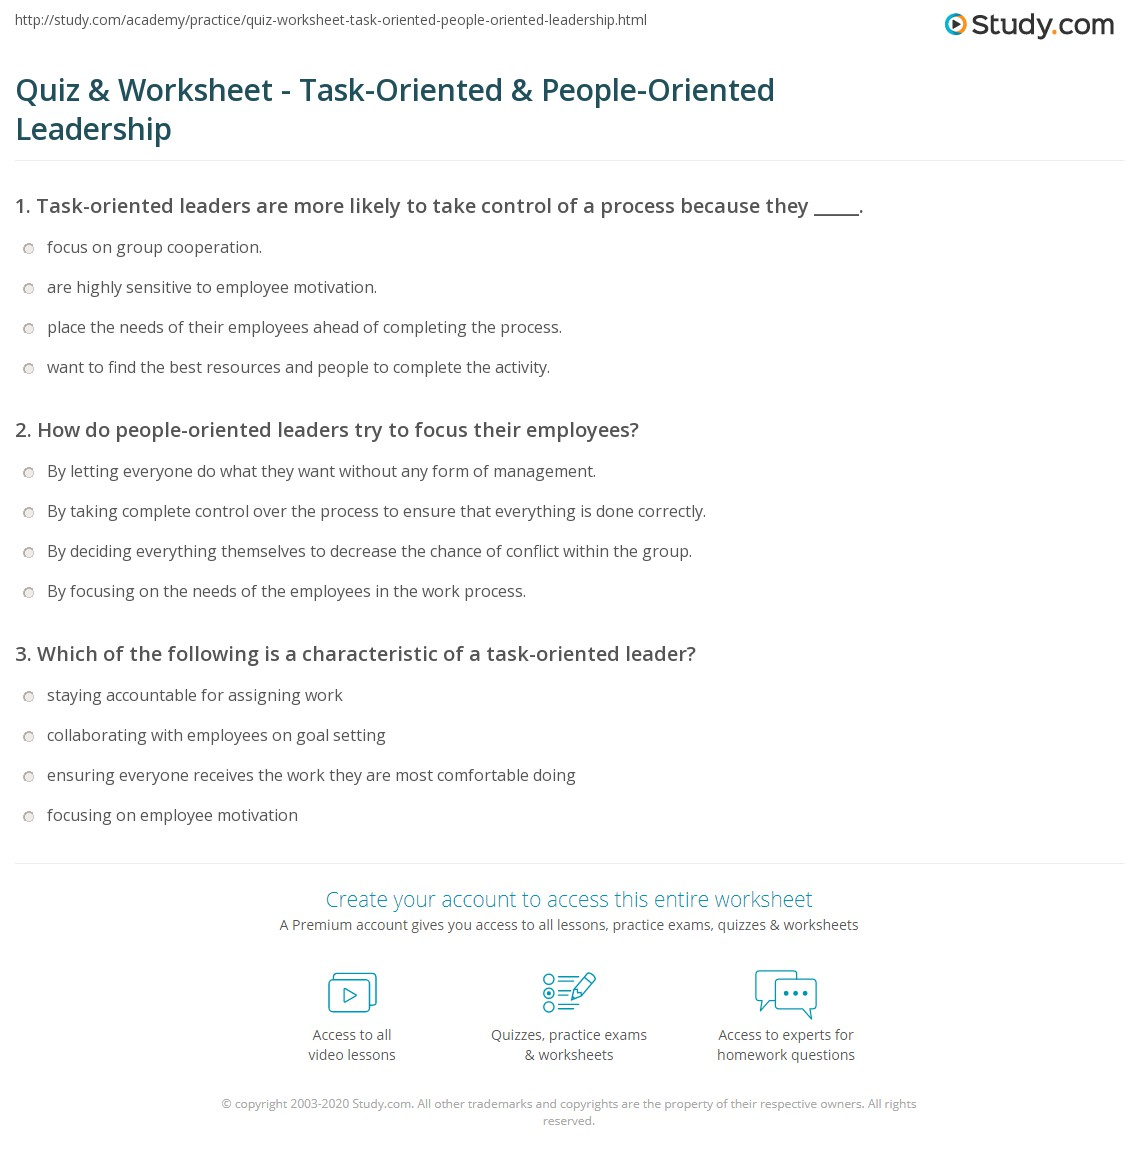 quiz worksheet task oriented people oriented leadership teamwork collaboration group decision making trust and cohesion describe which type of leader